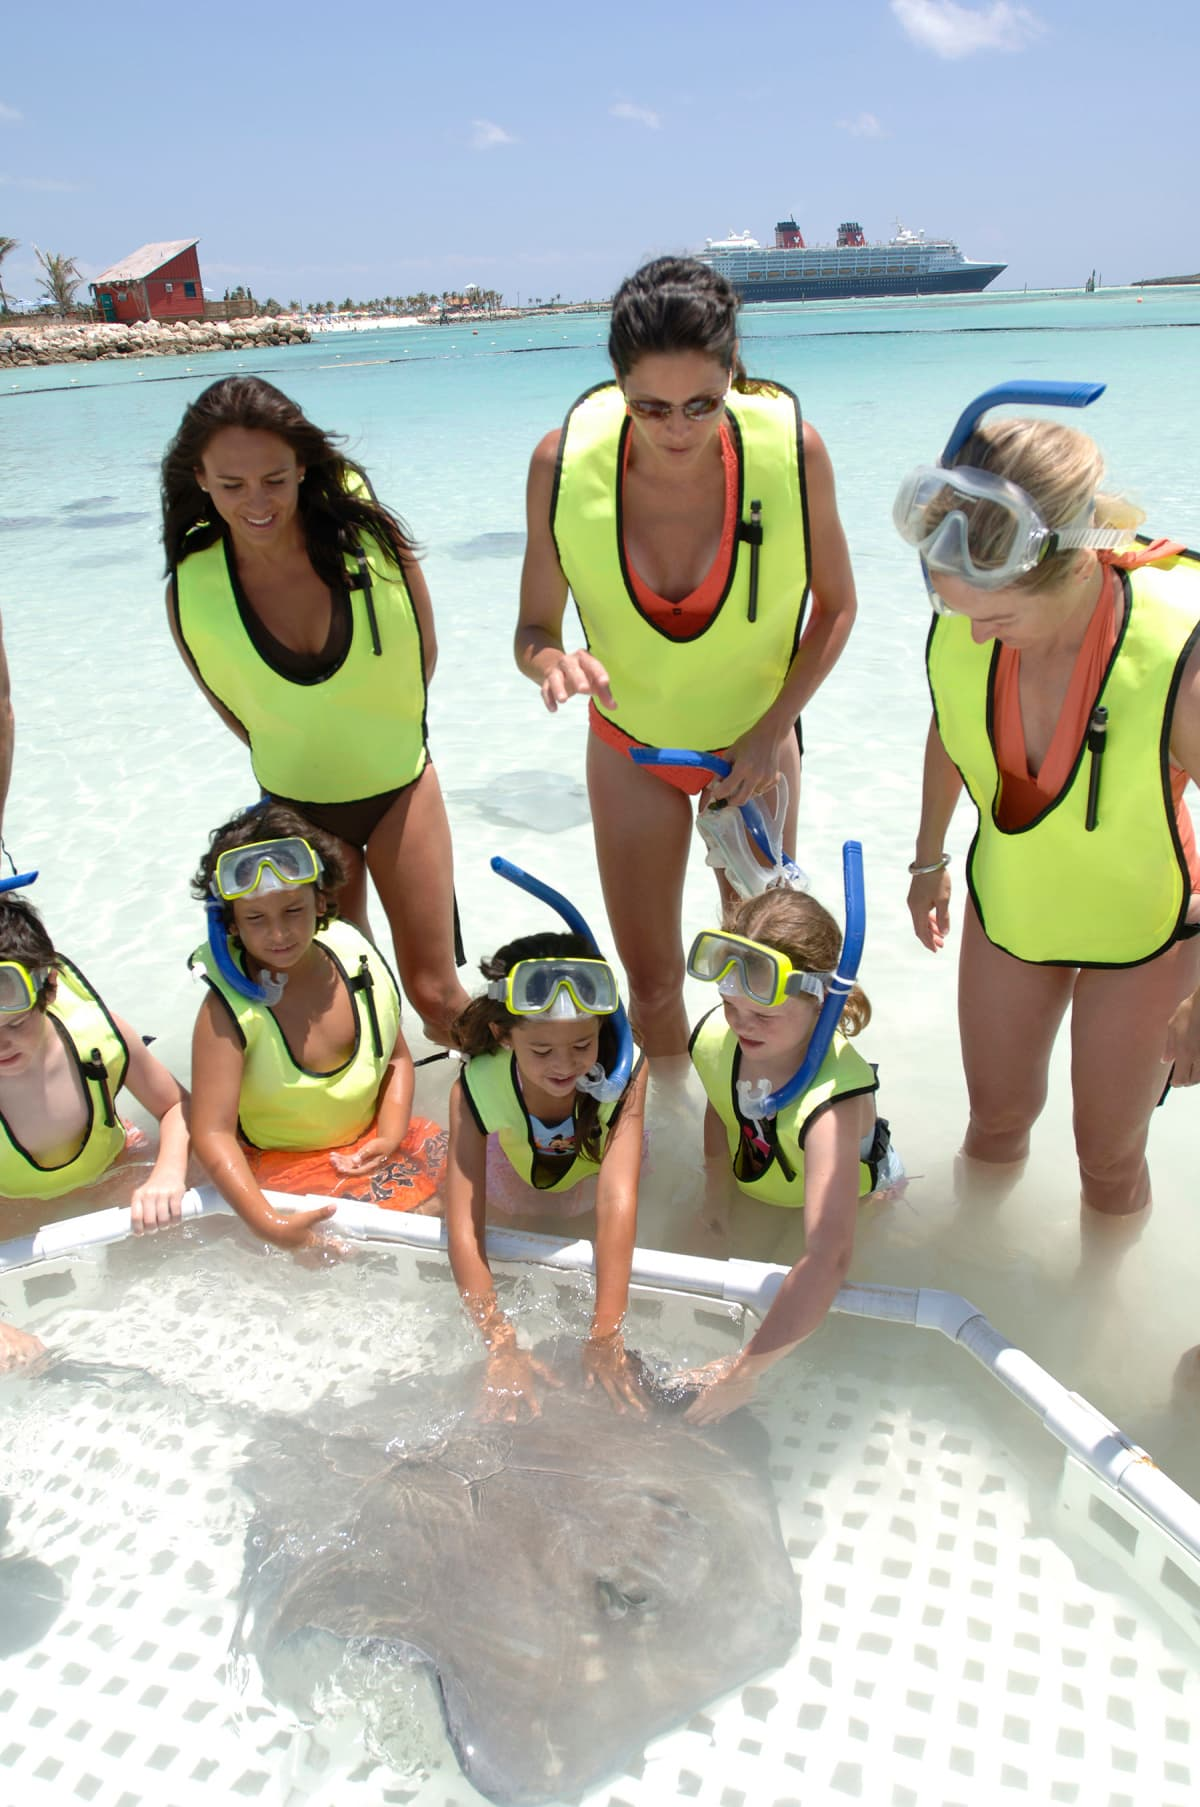 Castaway Ray's Stingray Adventure is a one-hour shore excursion for guests 5 years or older